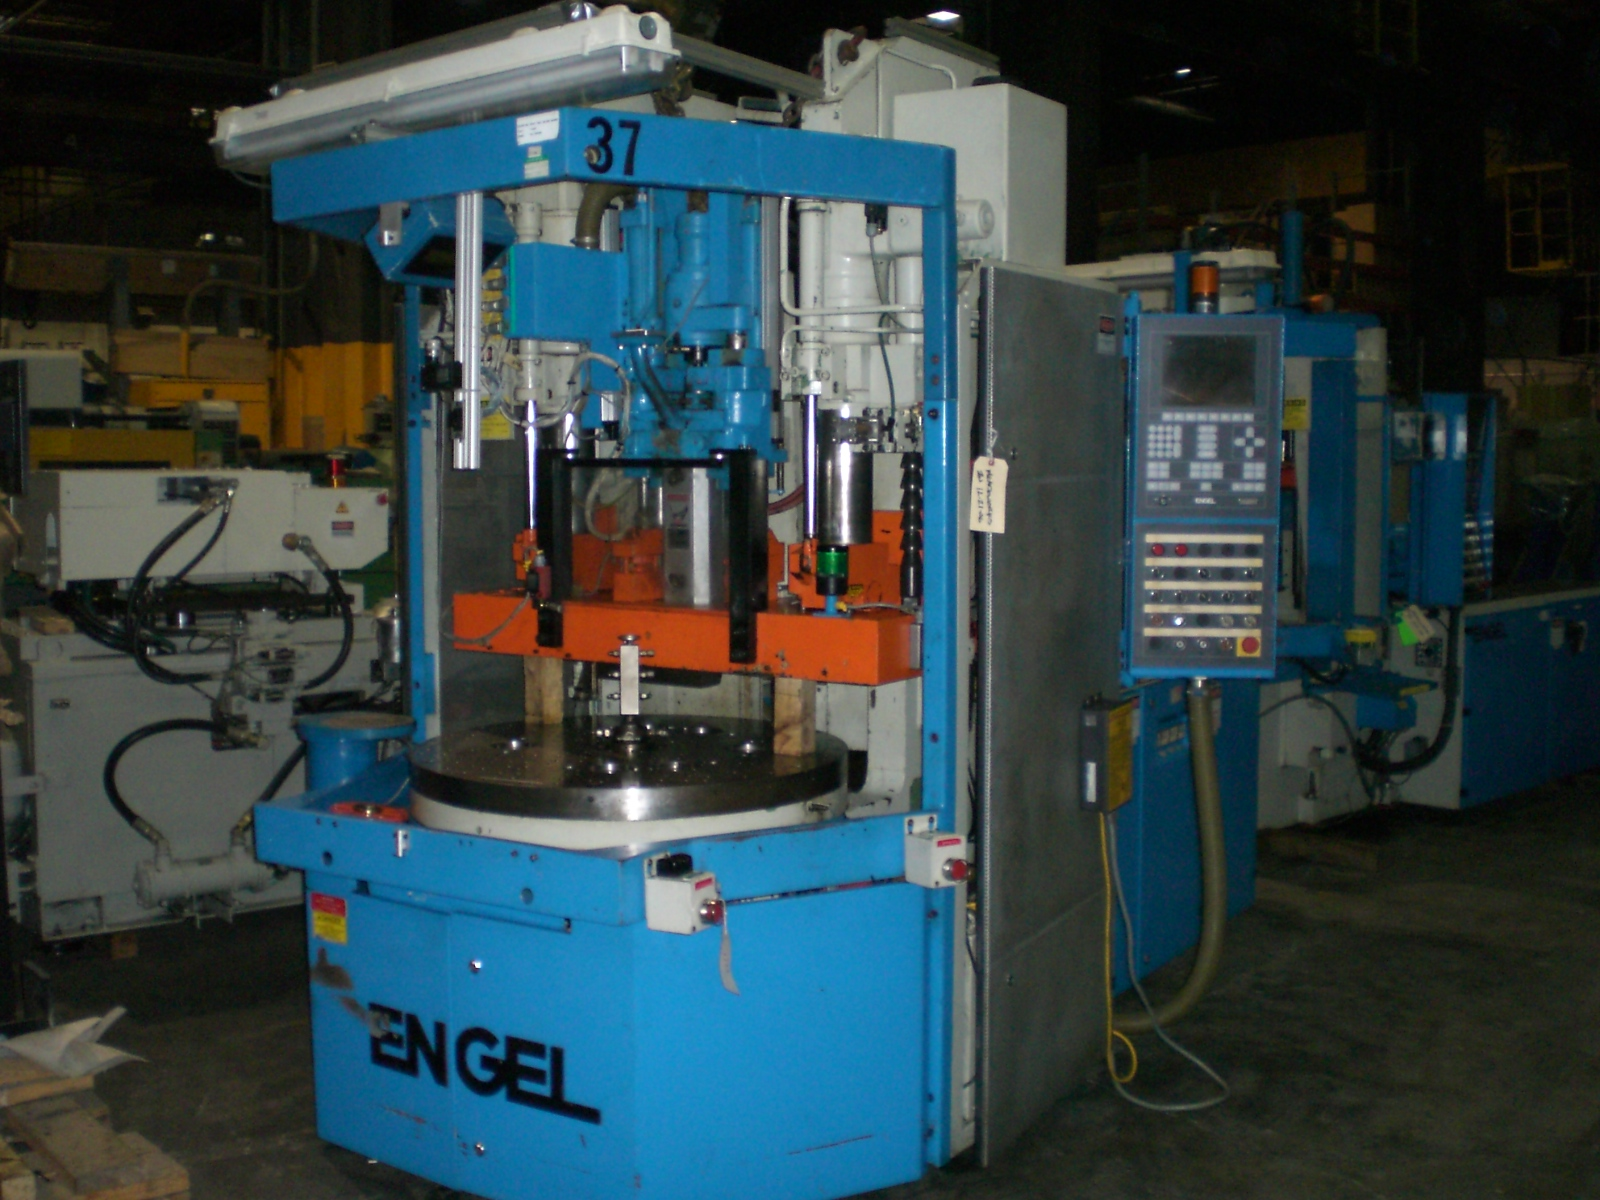 ENGEL55 TON 1.6 OZ , EC-90 CONTROL , ROTARY TABLE